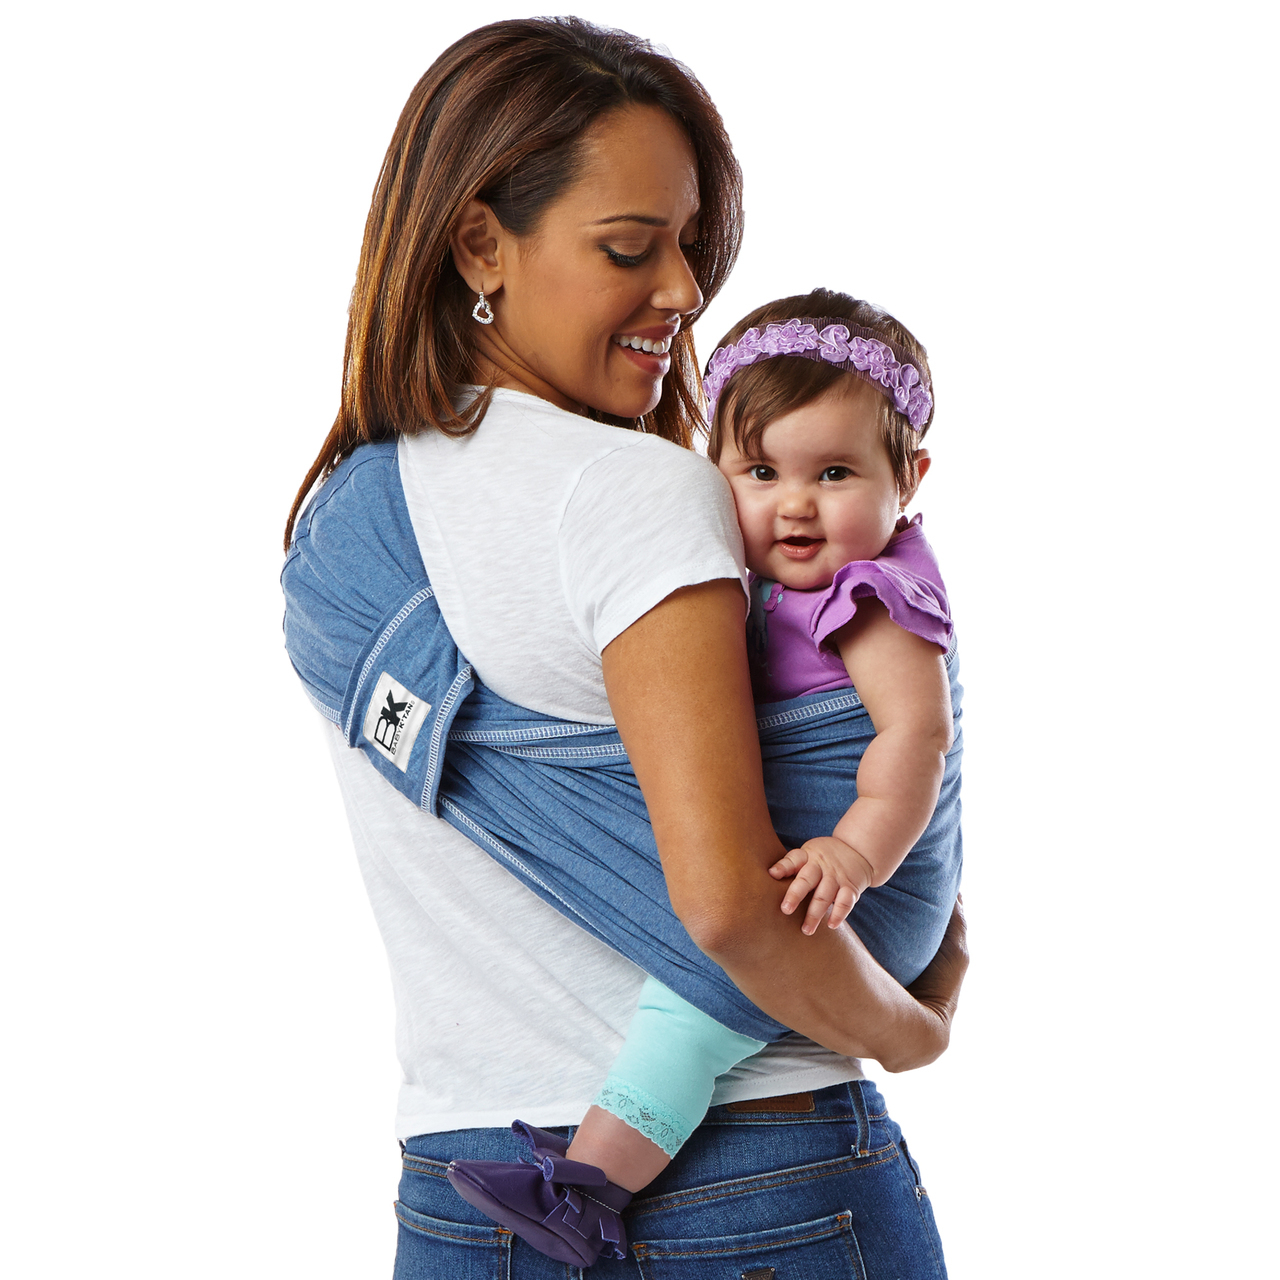 Baby K Tan Baby Carrier Review And 20 Off Discount Celebrating International Babywearing Week Bragging Mommy